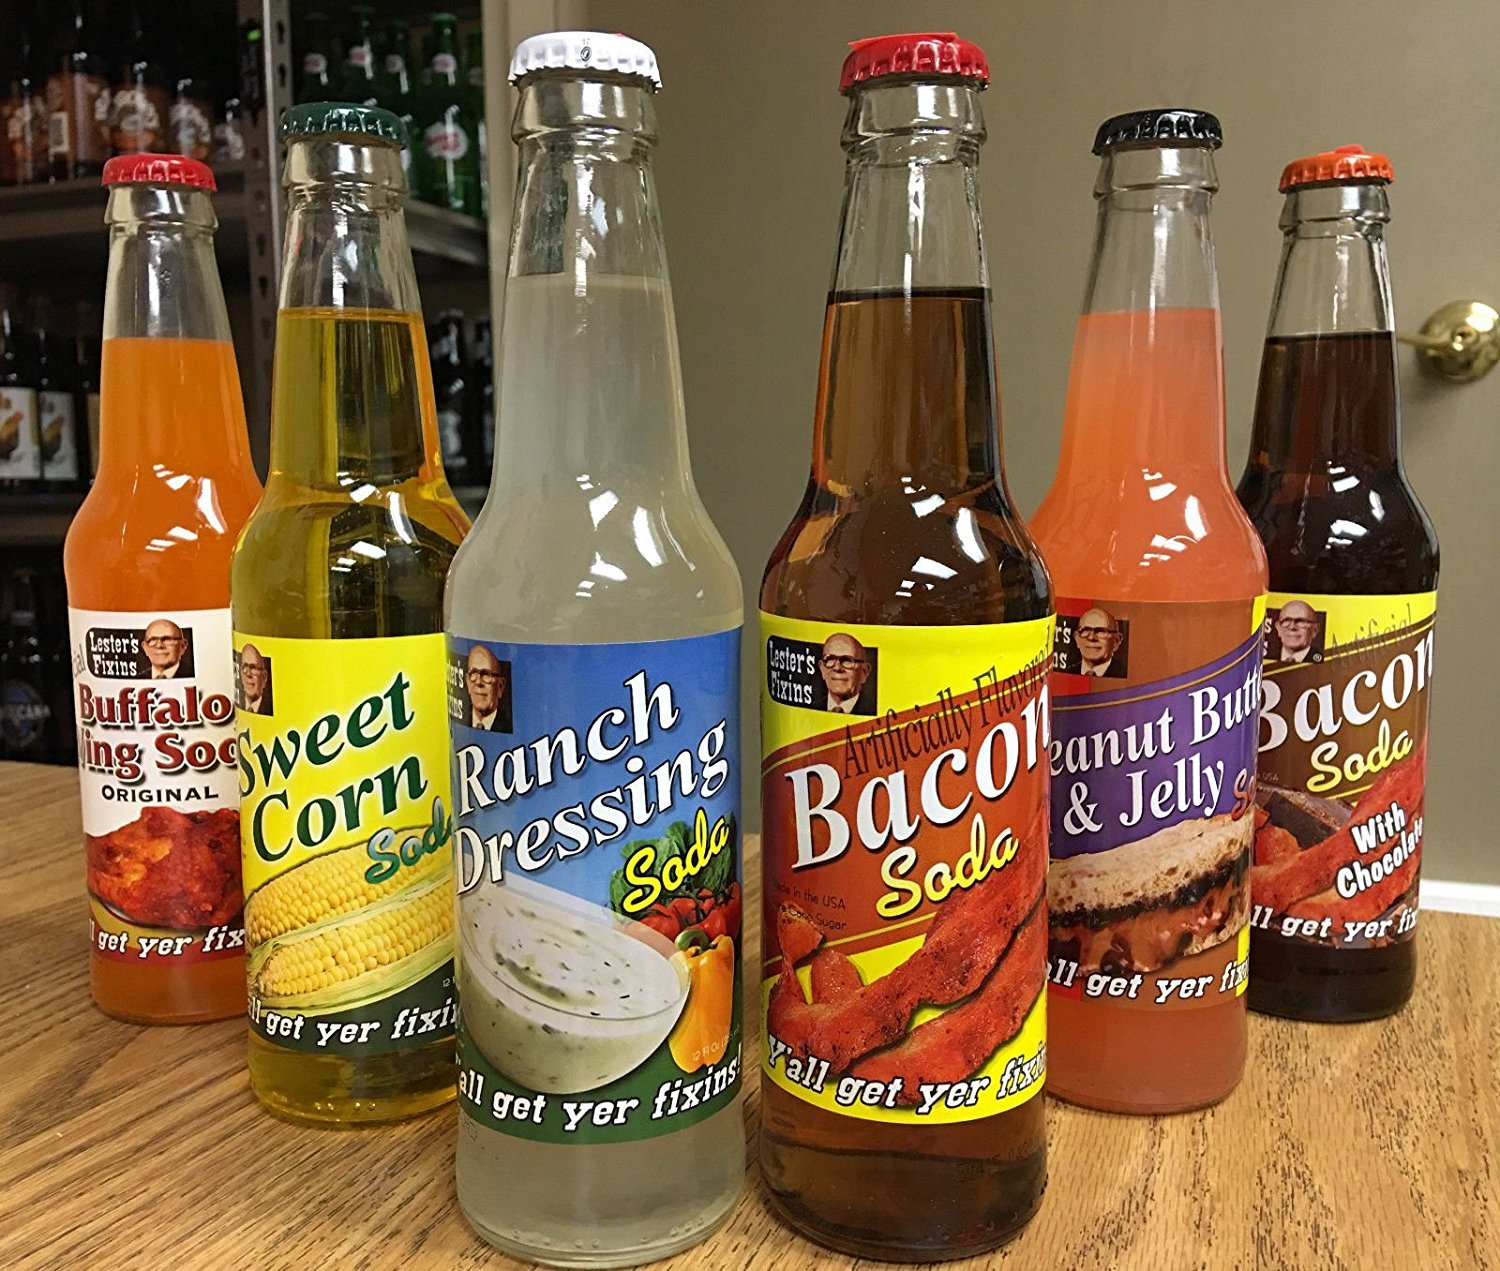 bacon-soda-ranch-dressing-soda